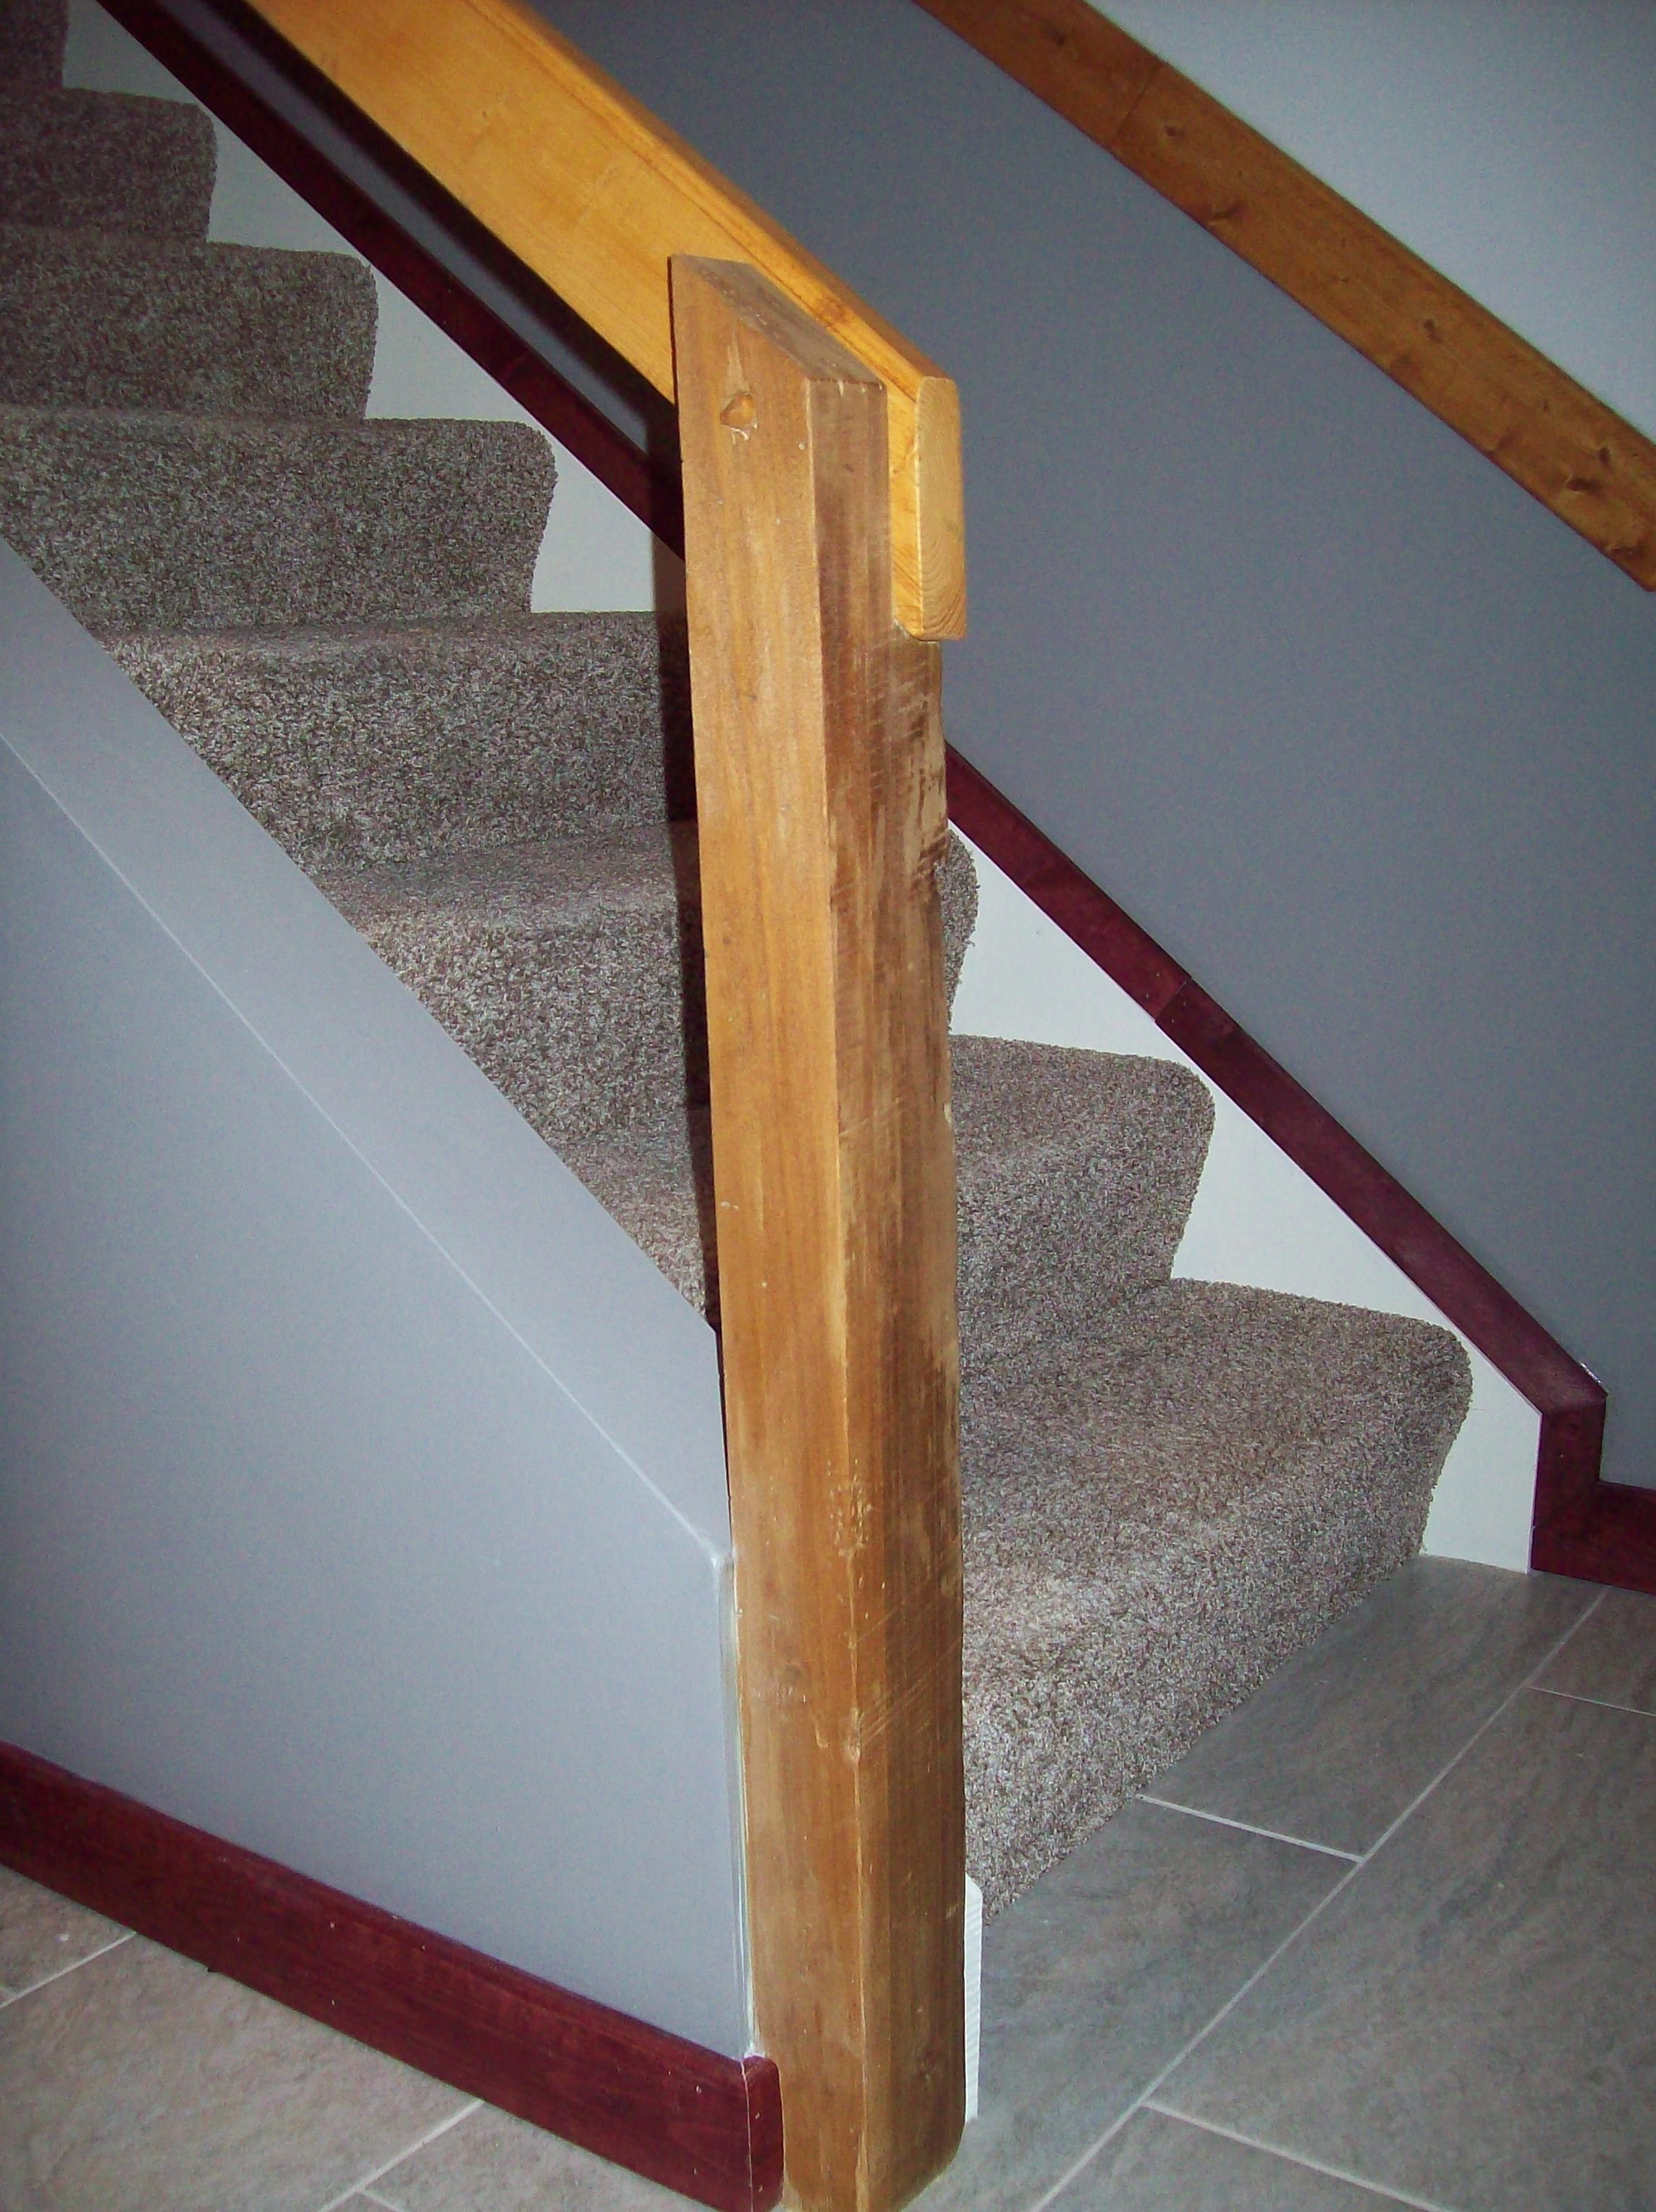 Removable Stair Rail That Was Finished Nailed At The Top Used A Reclaimed Barn Beam As Post And Handmade Peg To Attach Handrail